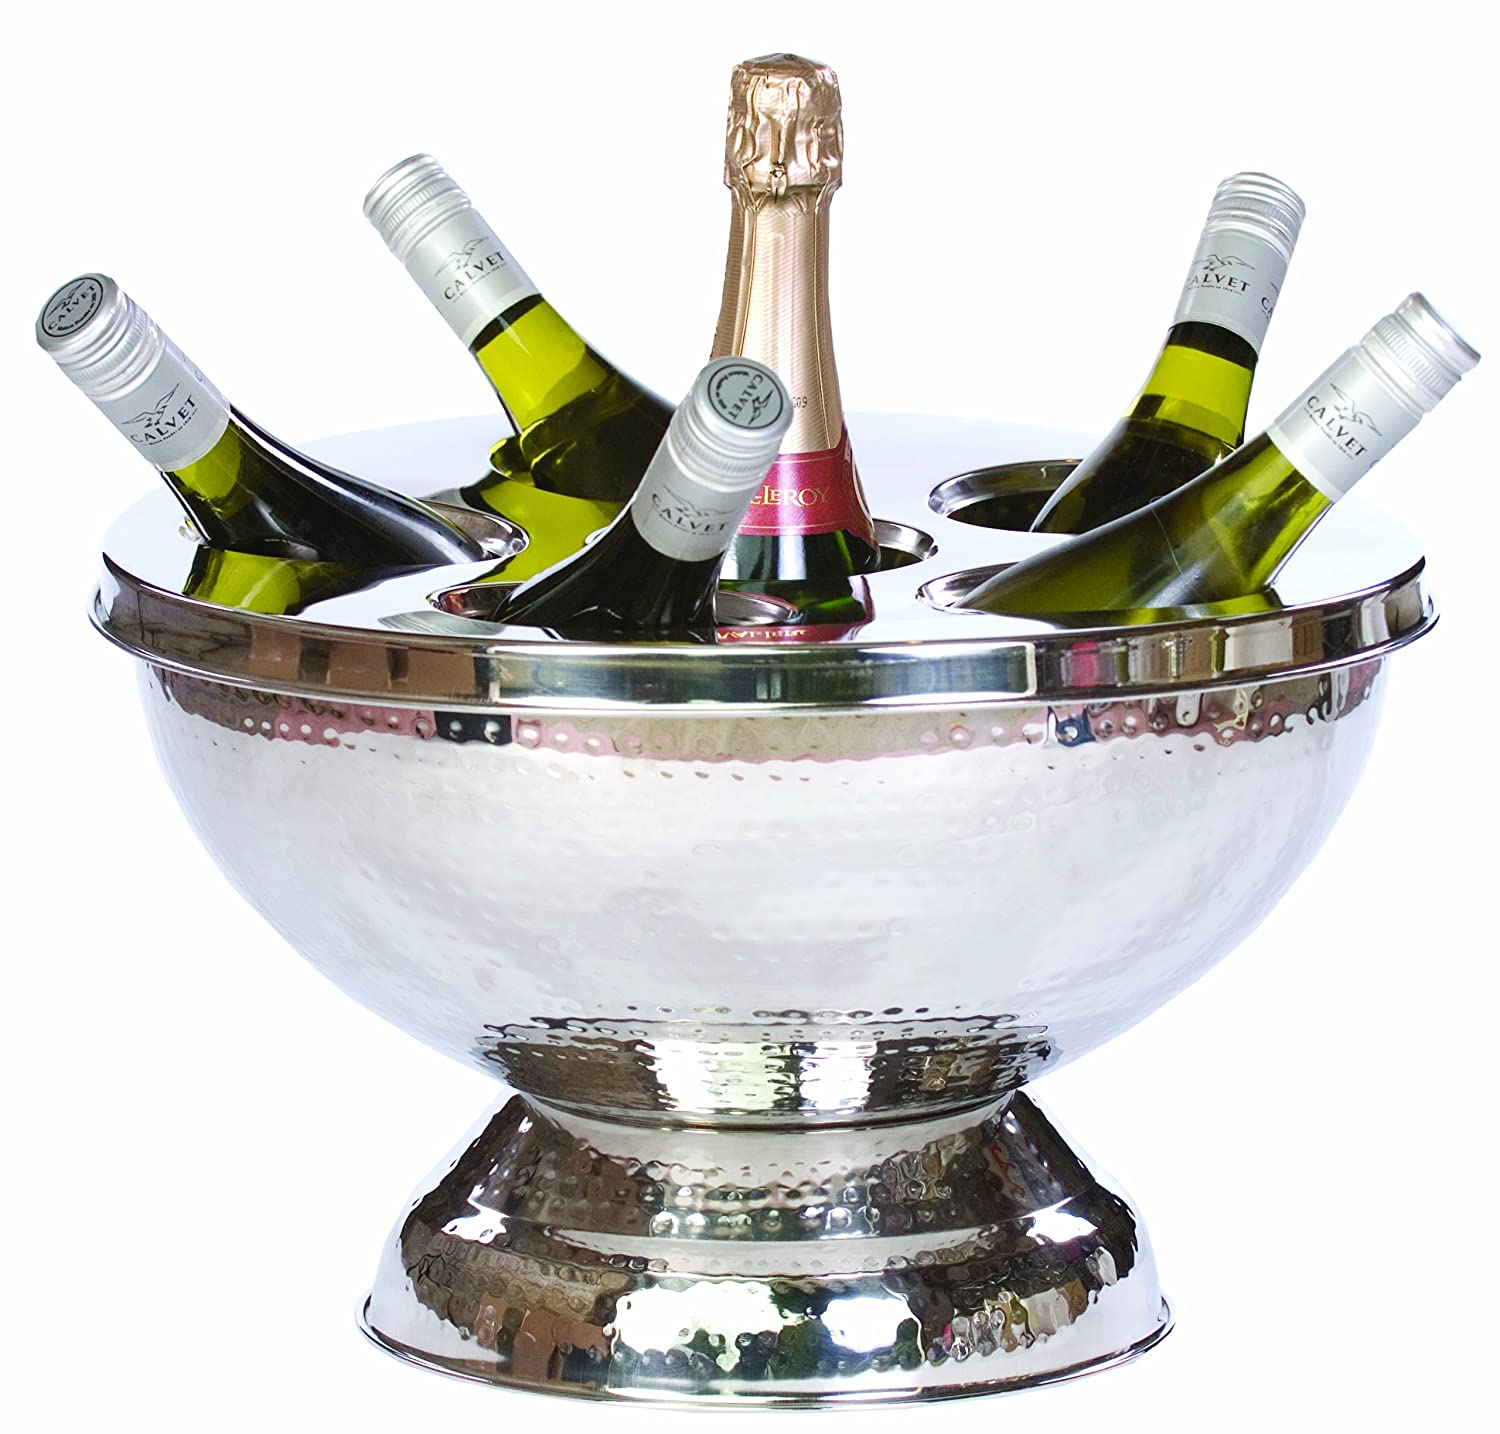 epicurean europe stainless steel champagne wine cooler amazonco  - epicurean europe stainless steel champagne wine cooler amazoncoukkitchen  home